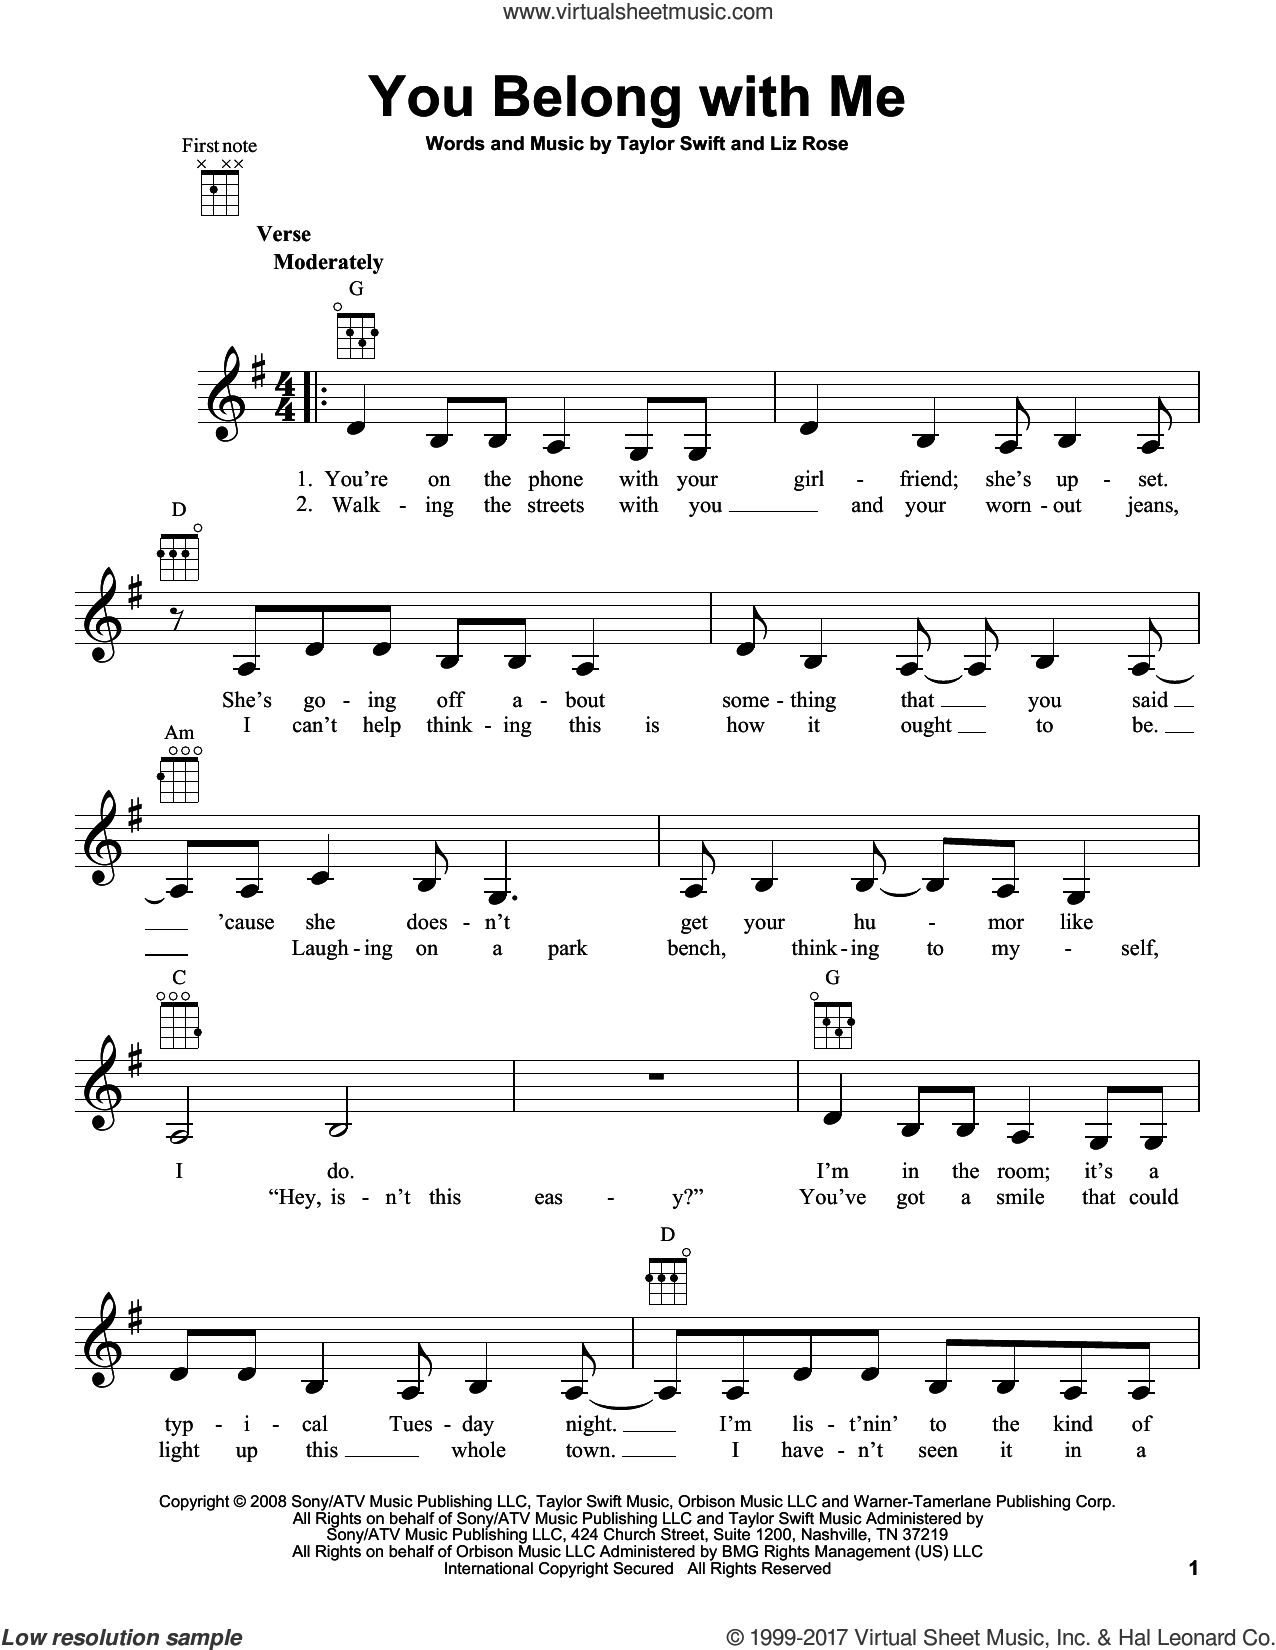 You Belong With Me sheet music for ukulele by Taylor Swift and Liz Rose, intermediate skill level